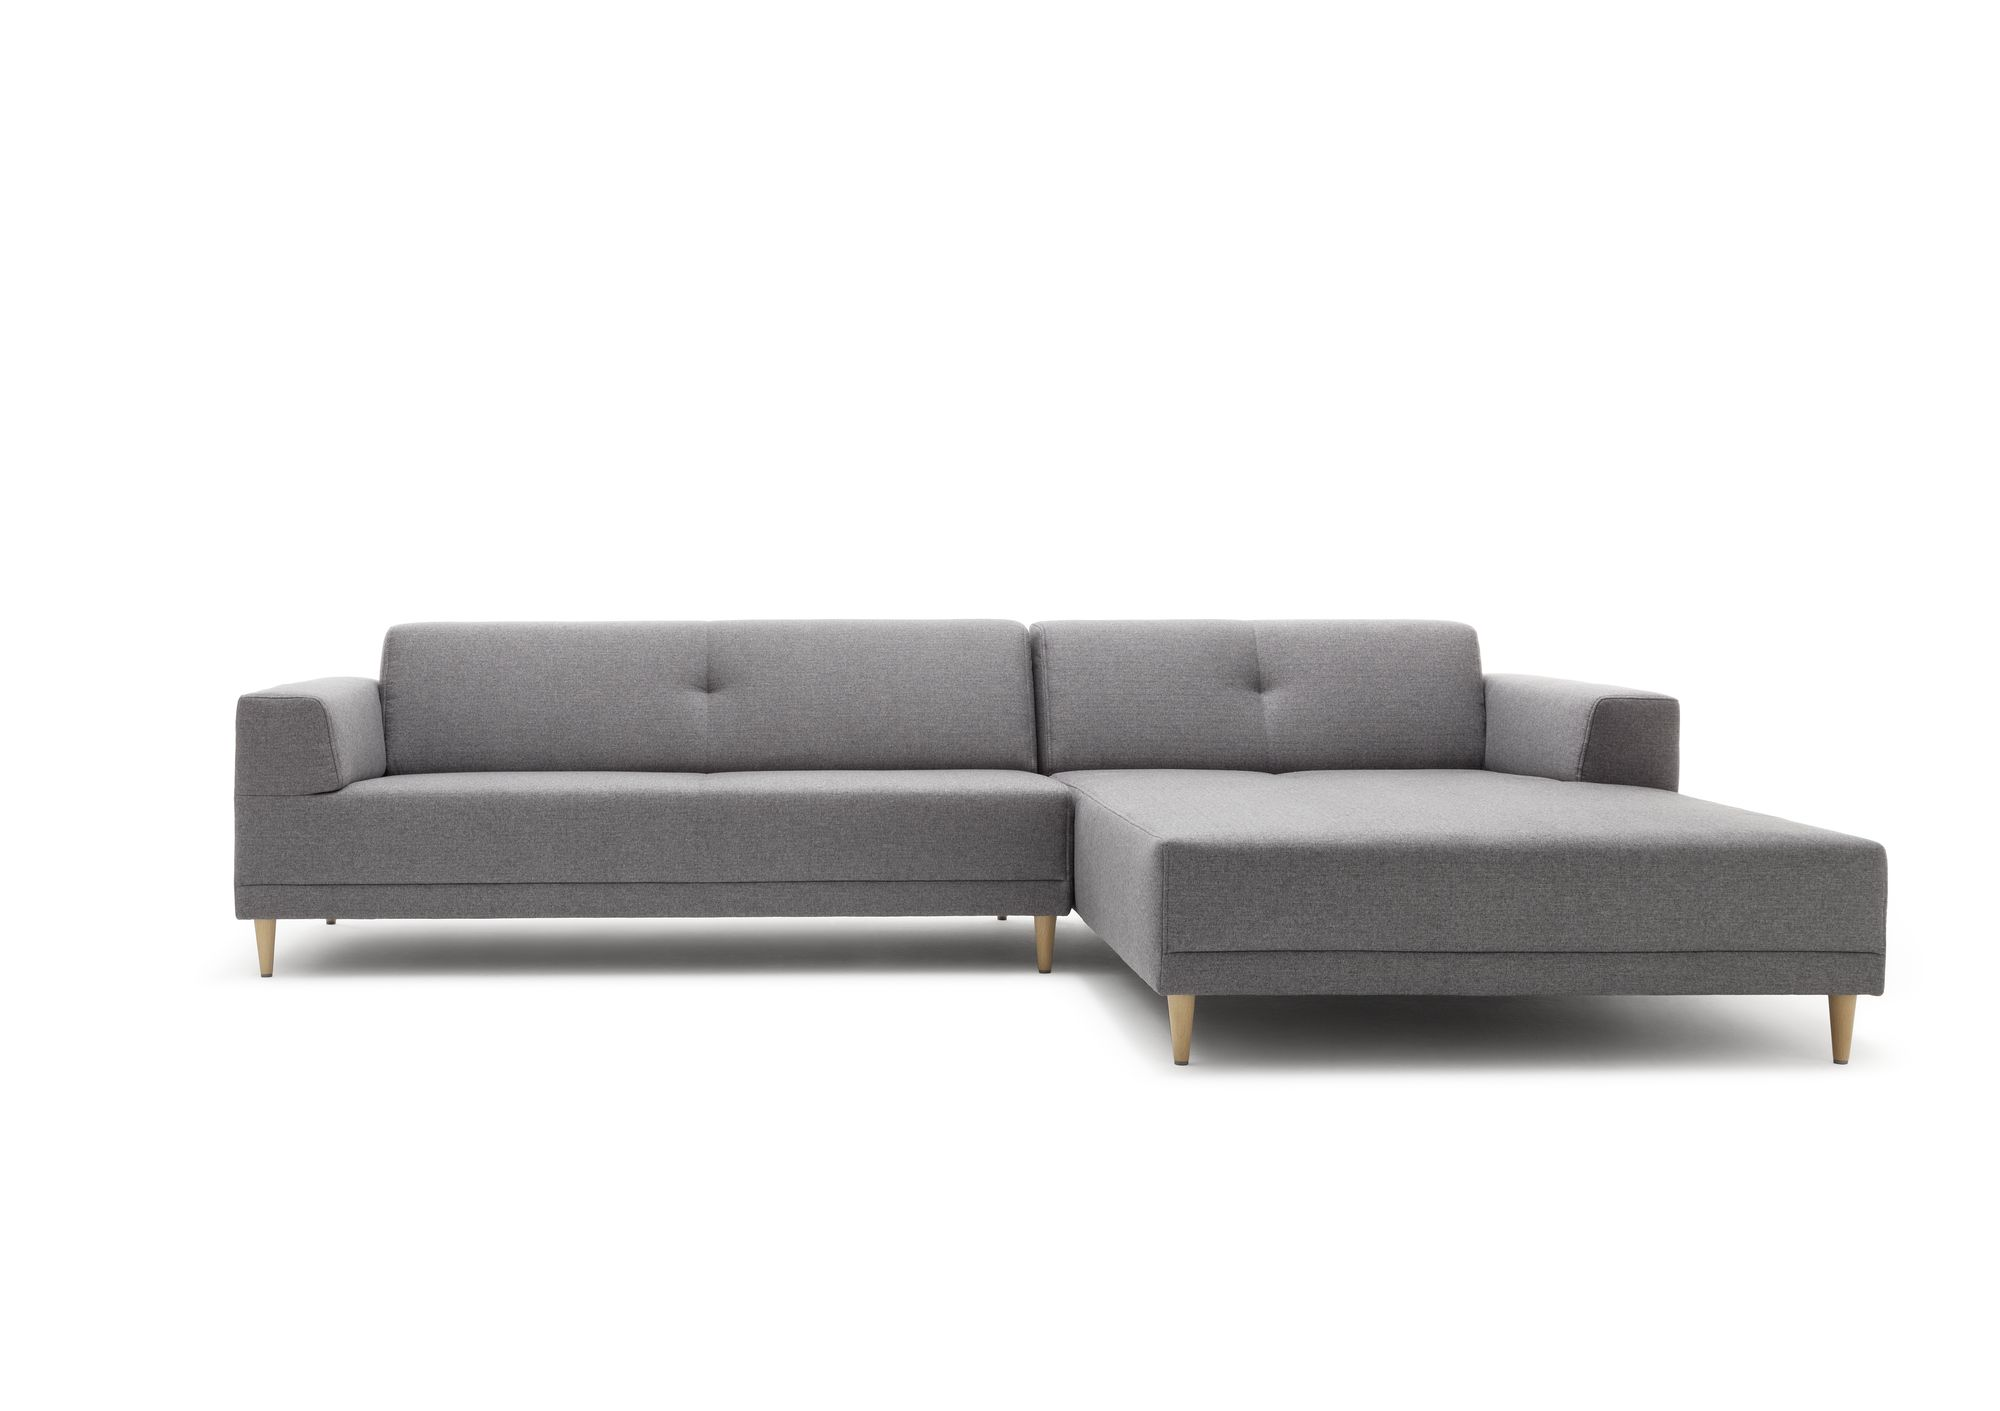 Freistil 189 rolf benz sofa mit recamiere in stoff for Rolf benz essen